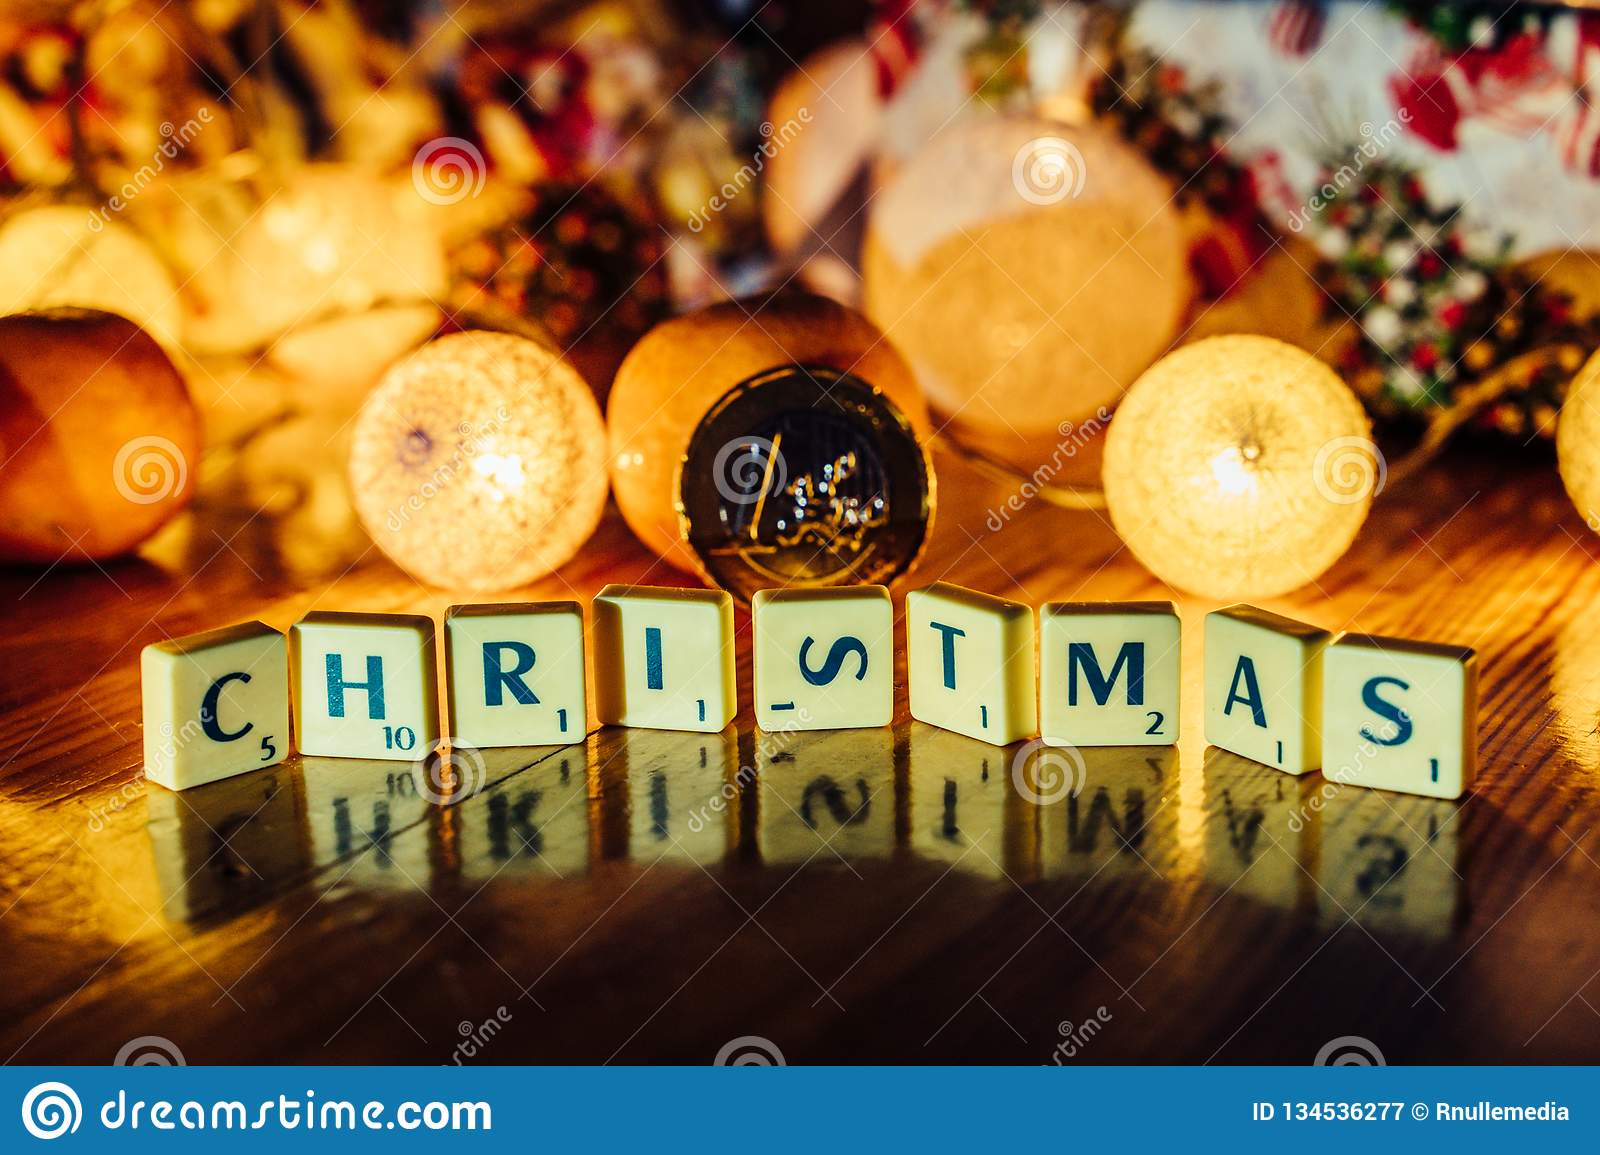 Word \'Christmas\' set on the Wooden Background from Letters of Board Game With the Blurred Christmas Lights, Fruits and Presents. In the Background together royalty free stock photography